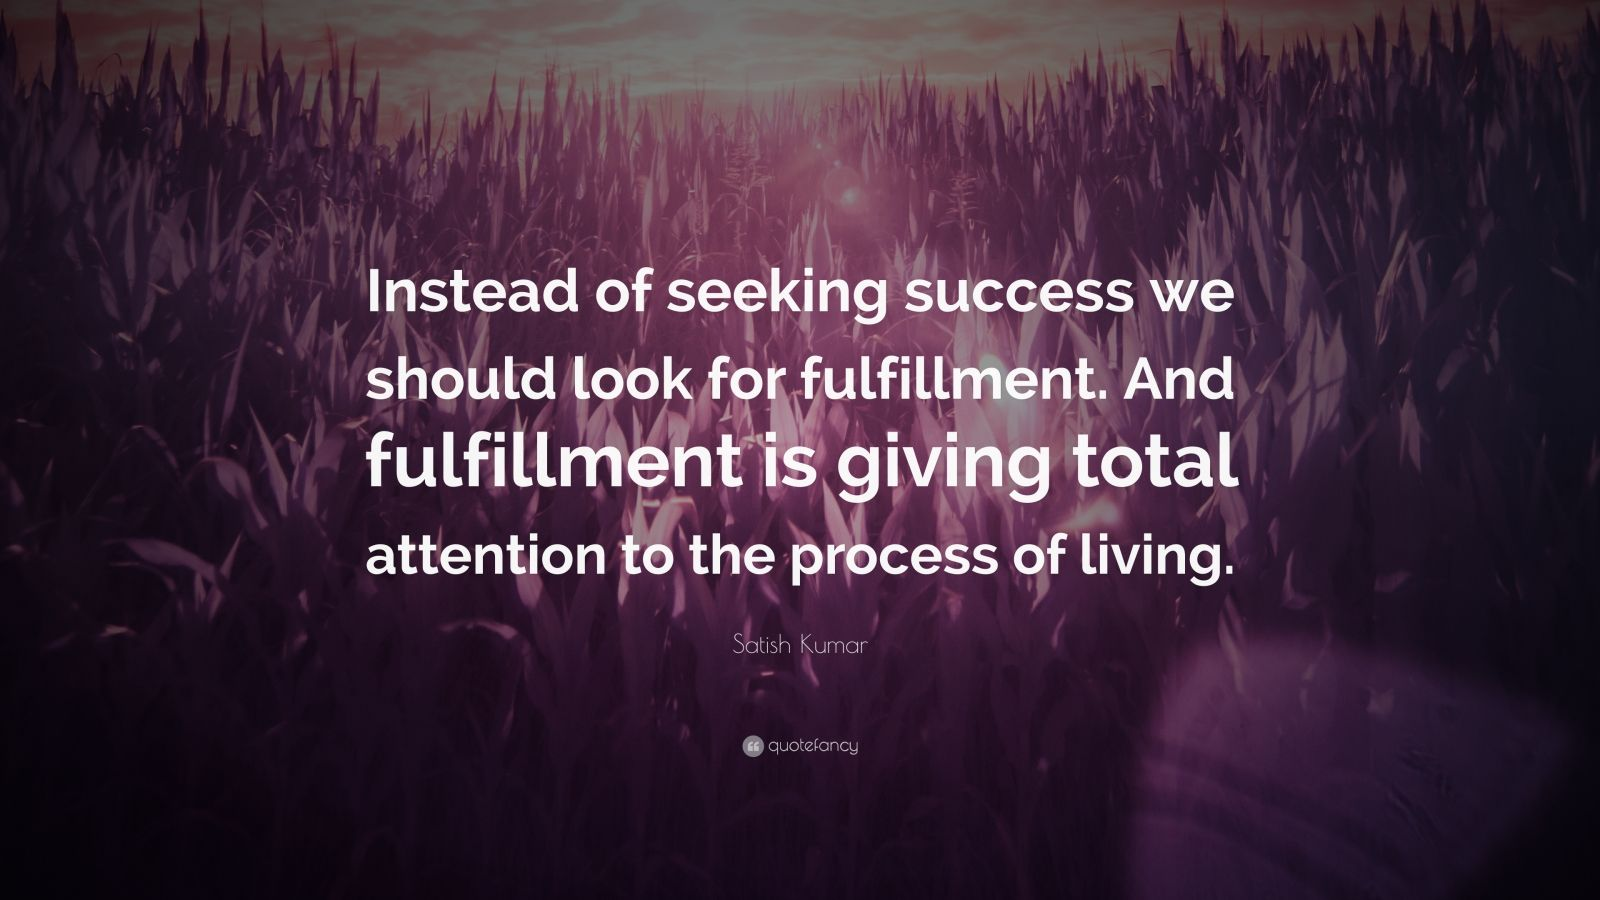 """Satish Kumar Quote: """"Instead of seeking success we should look for fulfillment. And fulfillment is giving total attention to the process of living."""""""